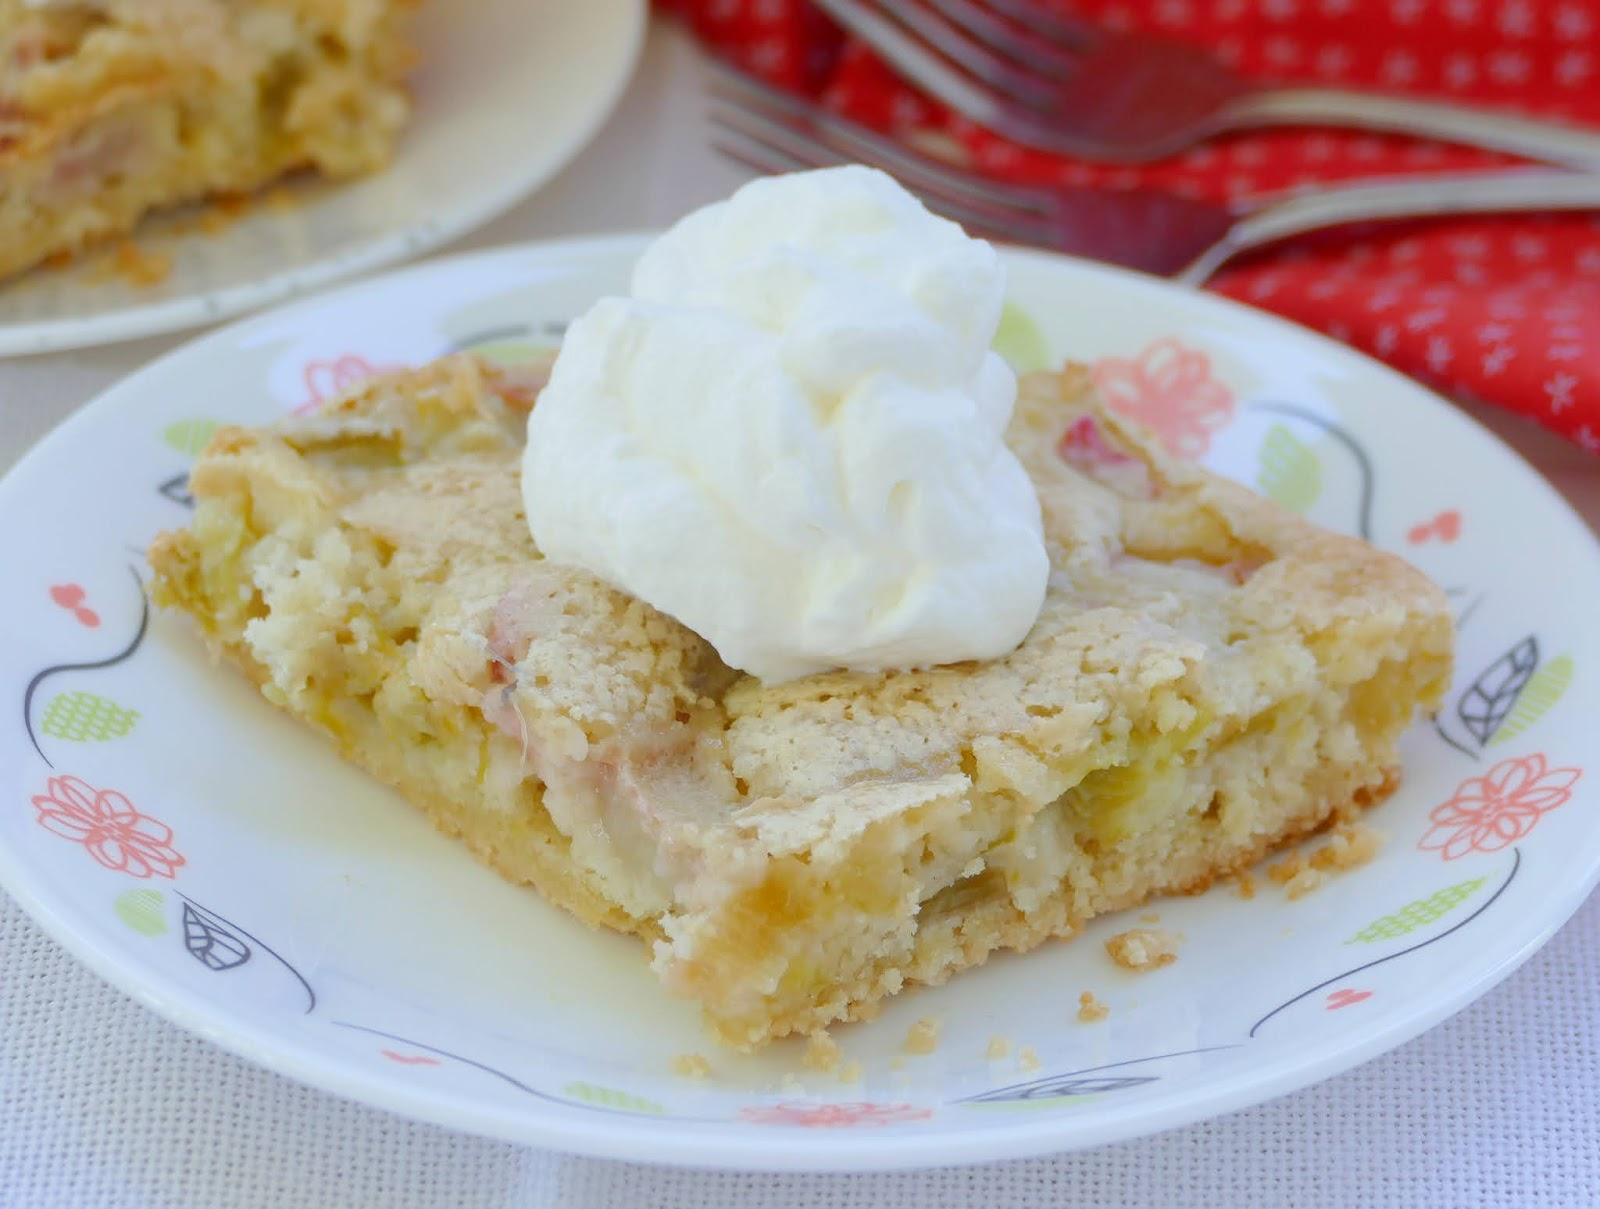 These amazing spring or summer rhubarb bars are a great potluck or party dessert! The buttery shortbread and tart rhubarb are a perfect pair and you'll find yourself wanting more than just one! Top them with whipped cream, sprinkled powdered sugar or ice cream for a wonderful, sweet treat!